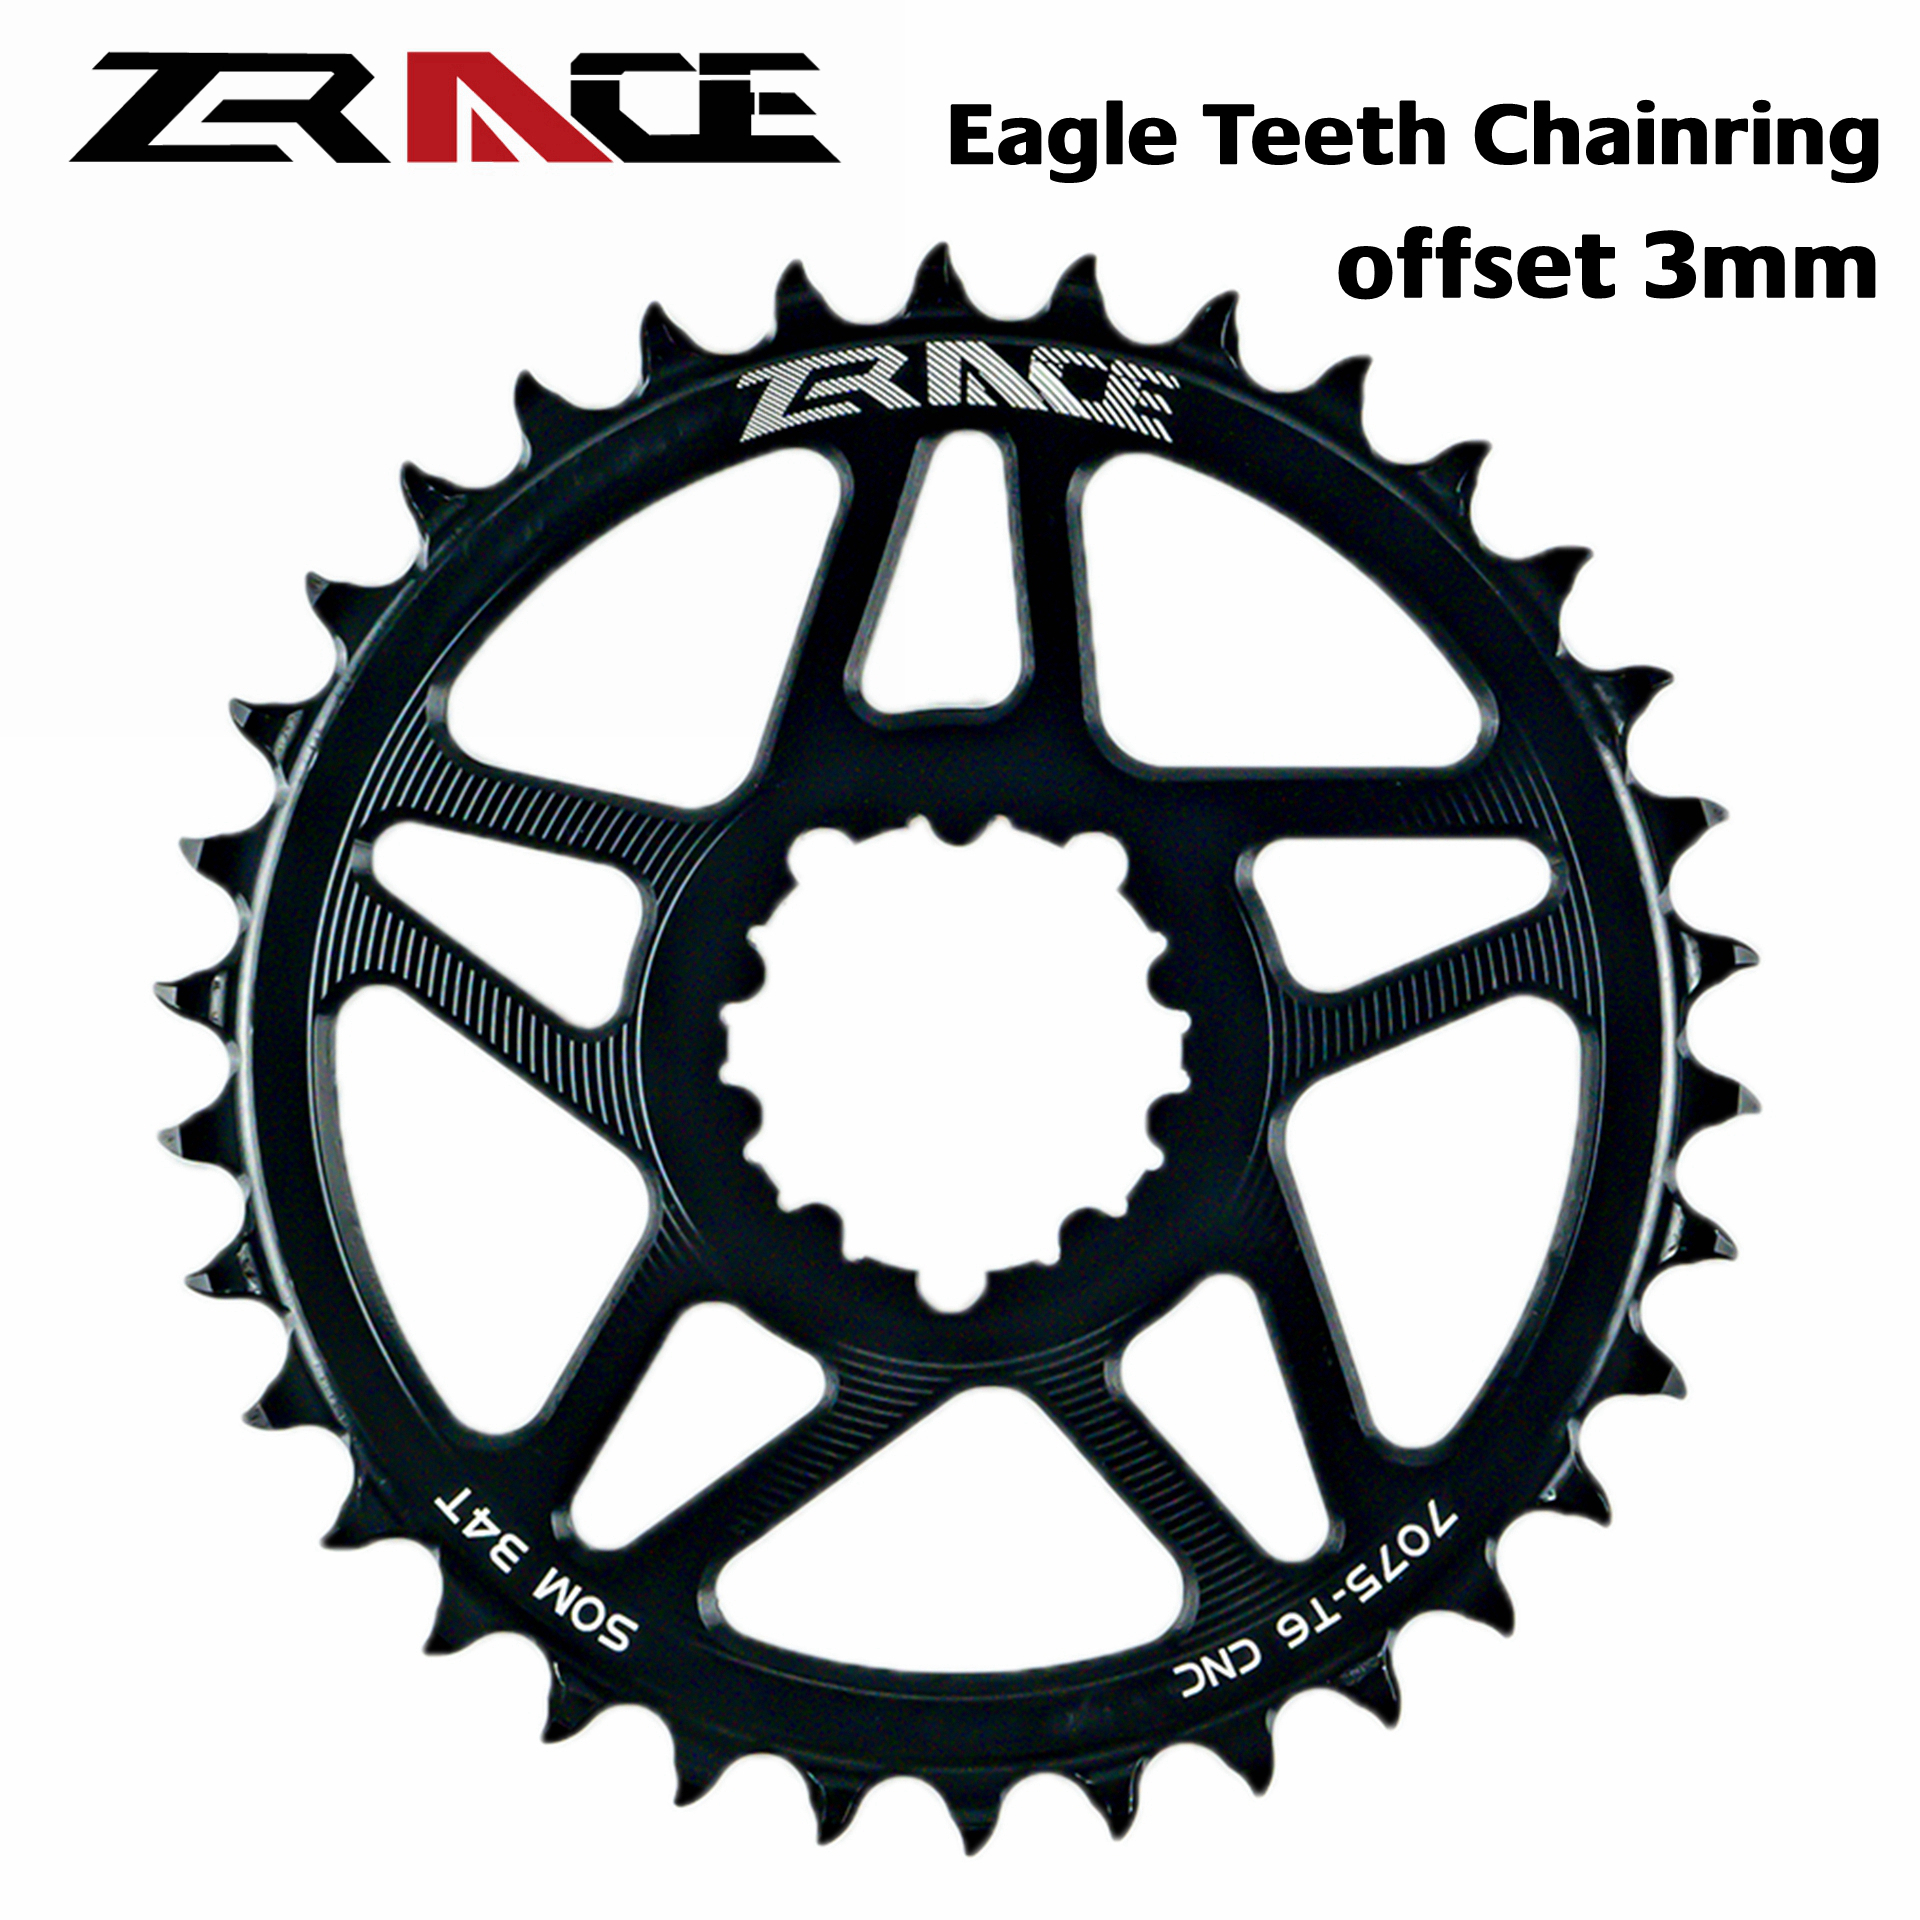 Zrace 10s 11s 12s Chainring, Eagle Teeth 7075al Cnc, Offset 3mm, Mtb Chainwheel, For Sram Direct Mount Crank, Compatible Eagle image